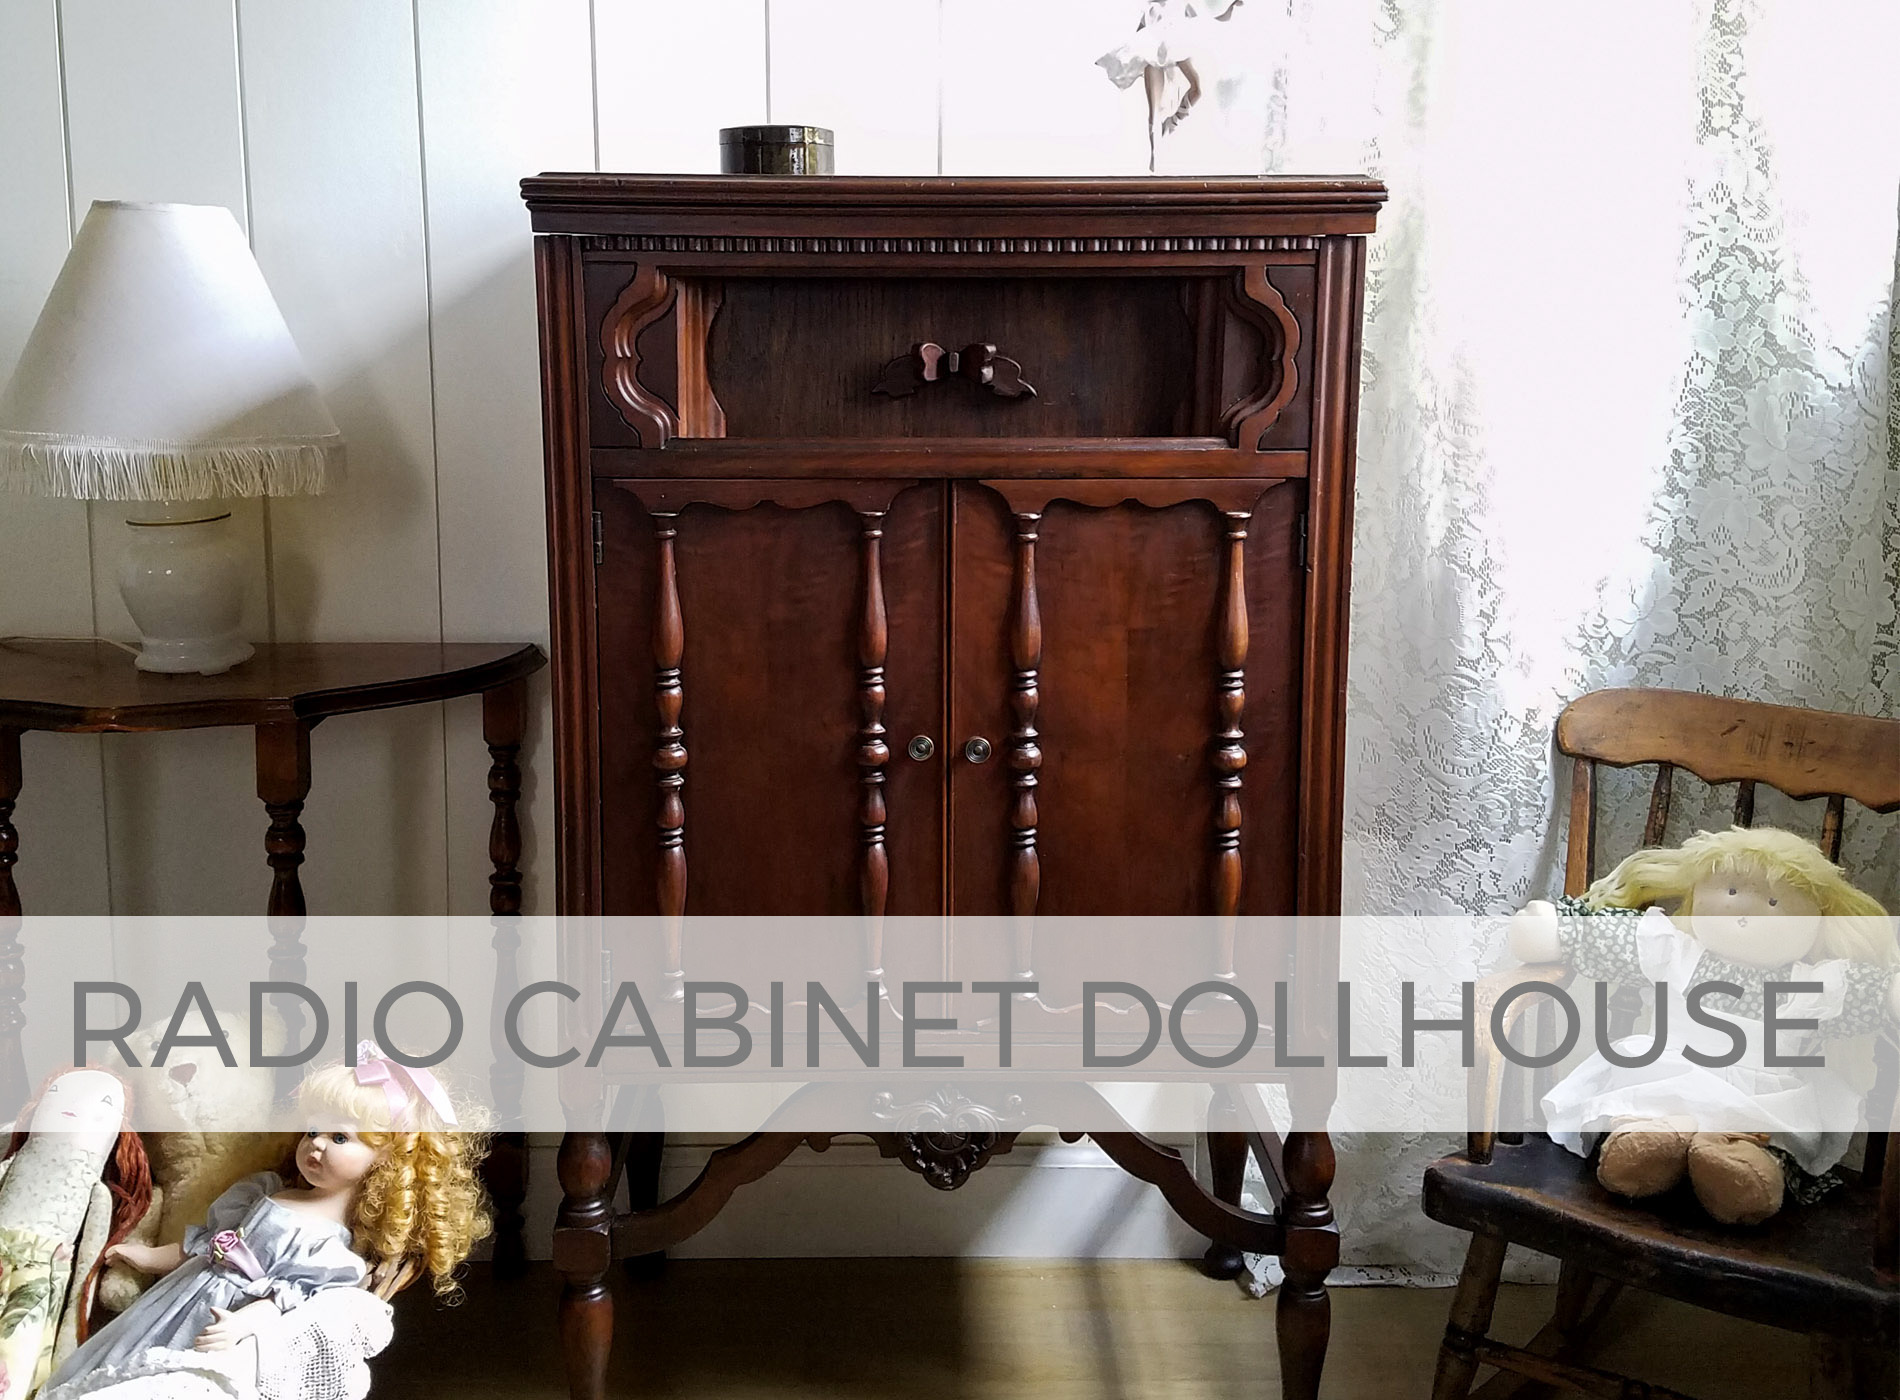 Radio Cabinet Dollhouse by Larissa of Prodigal Pieces | prodigalpieces.com #prodigalpieces